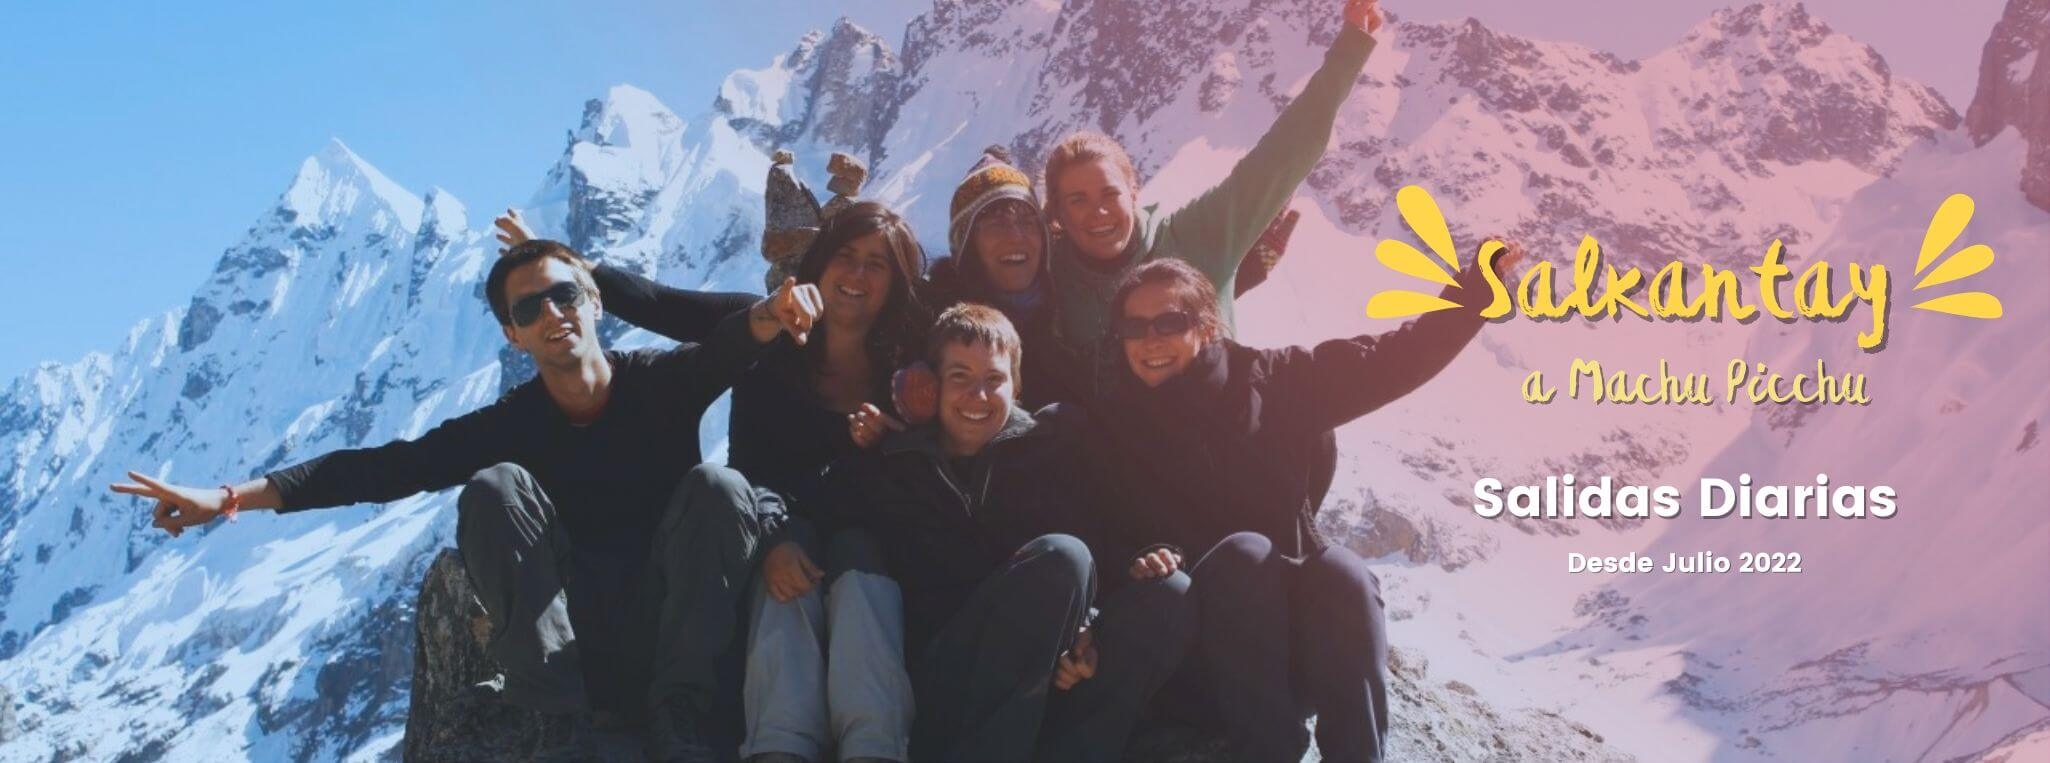 Classic Salkantay Trek to Machu Picchu in 5 days